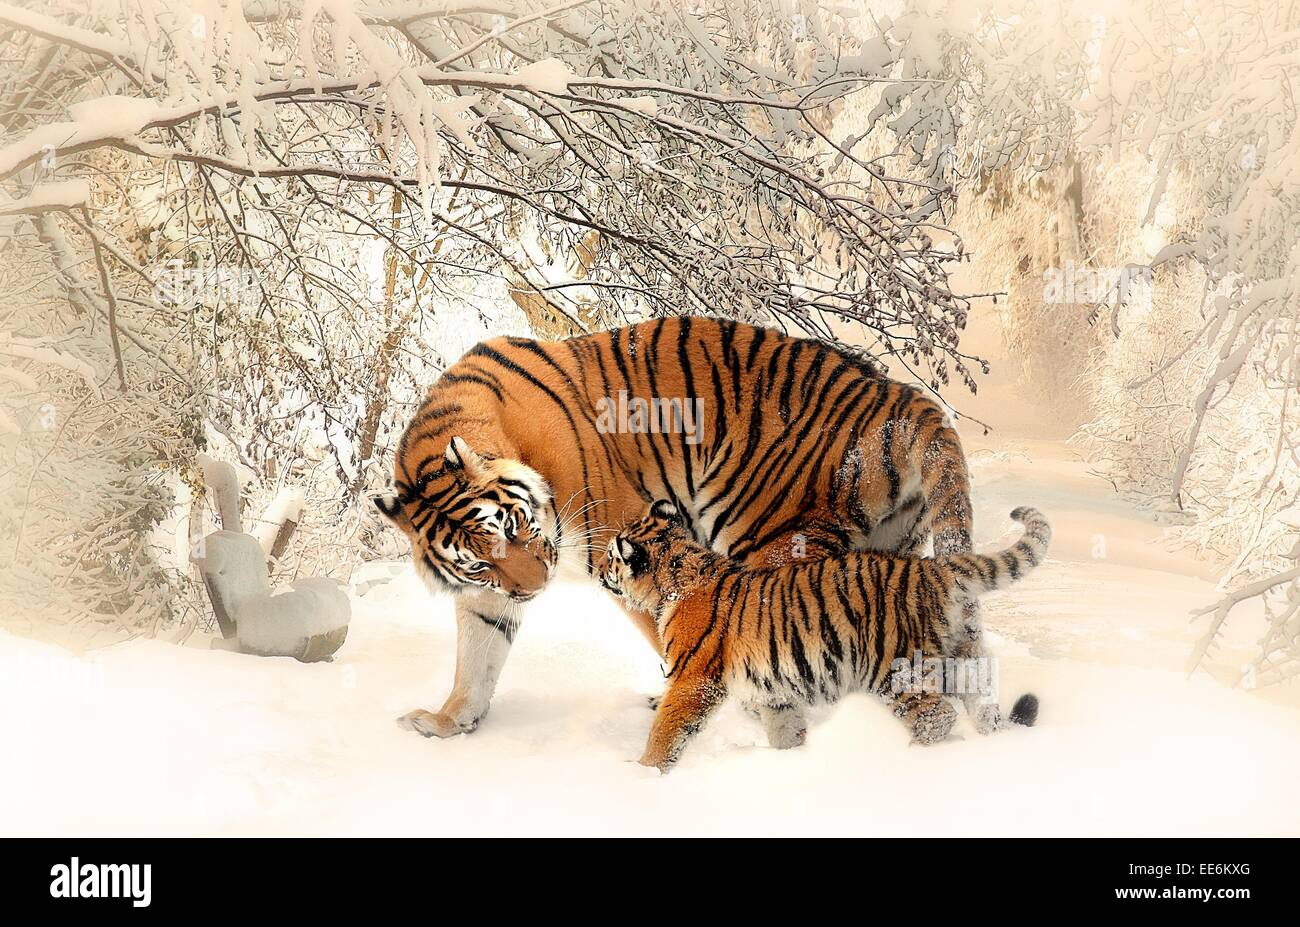 Tigers in snow - Stock Image